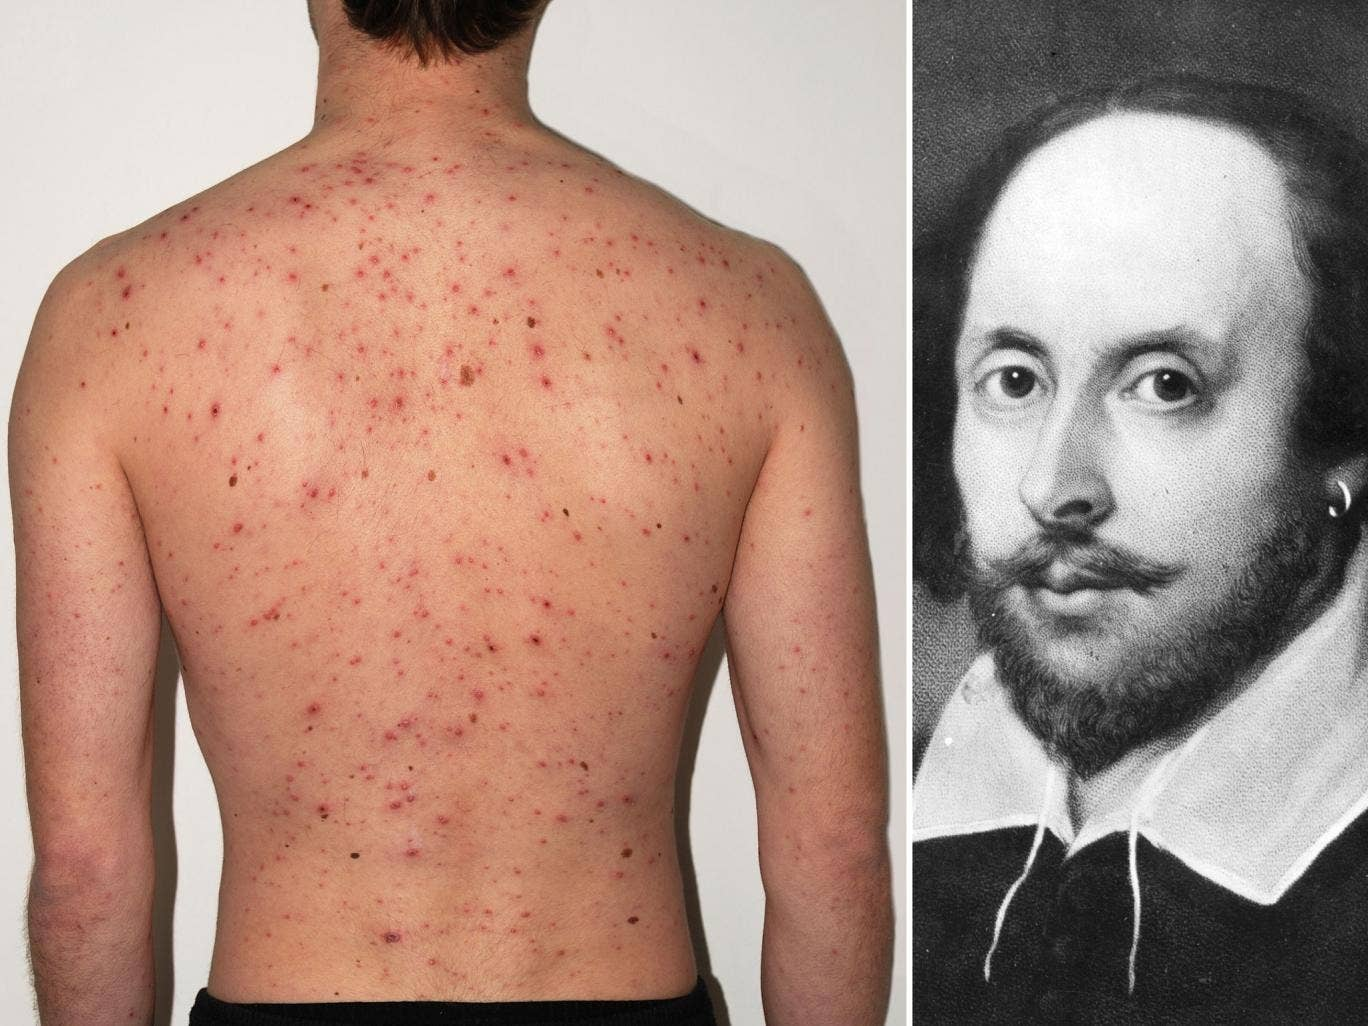 Medical experts are claiming that Shakespeare's success has resulted in a painful legacy for people will skin disease